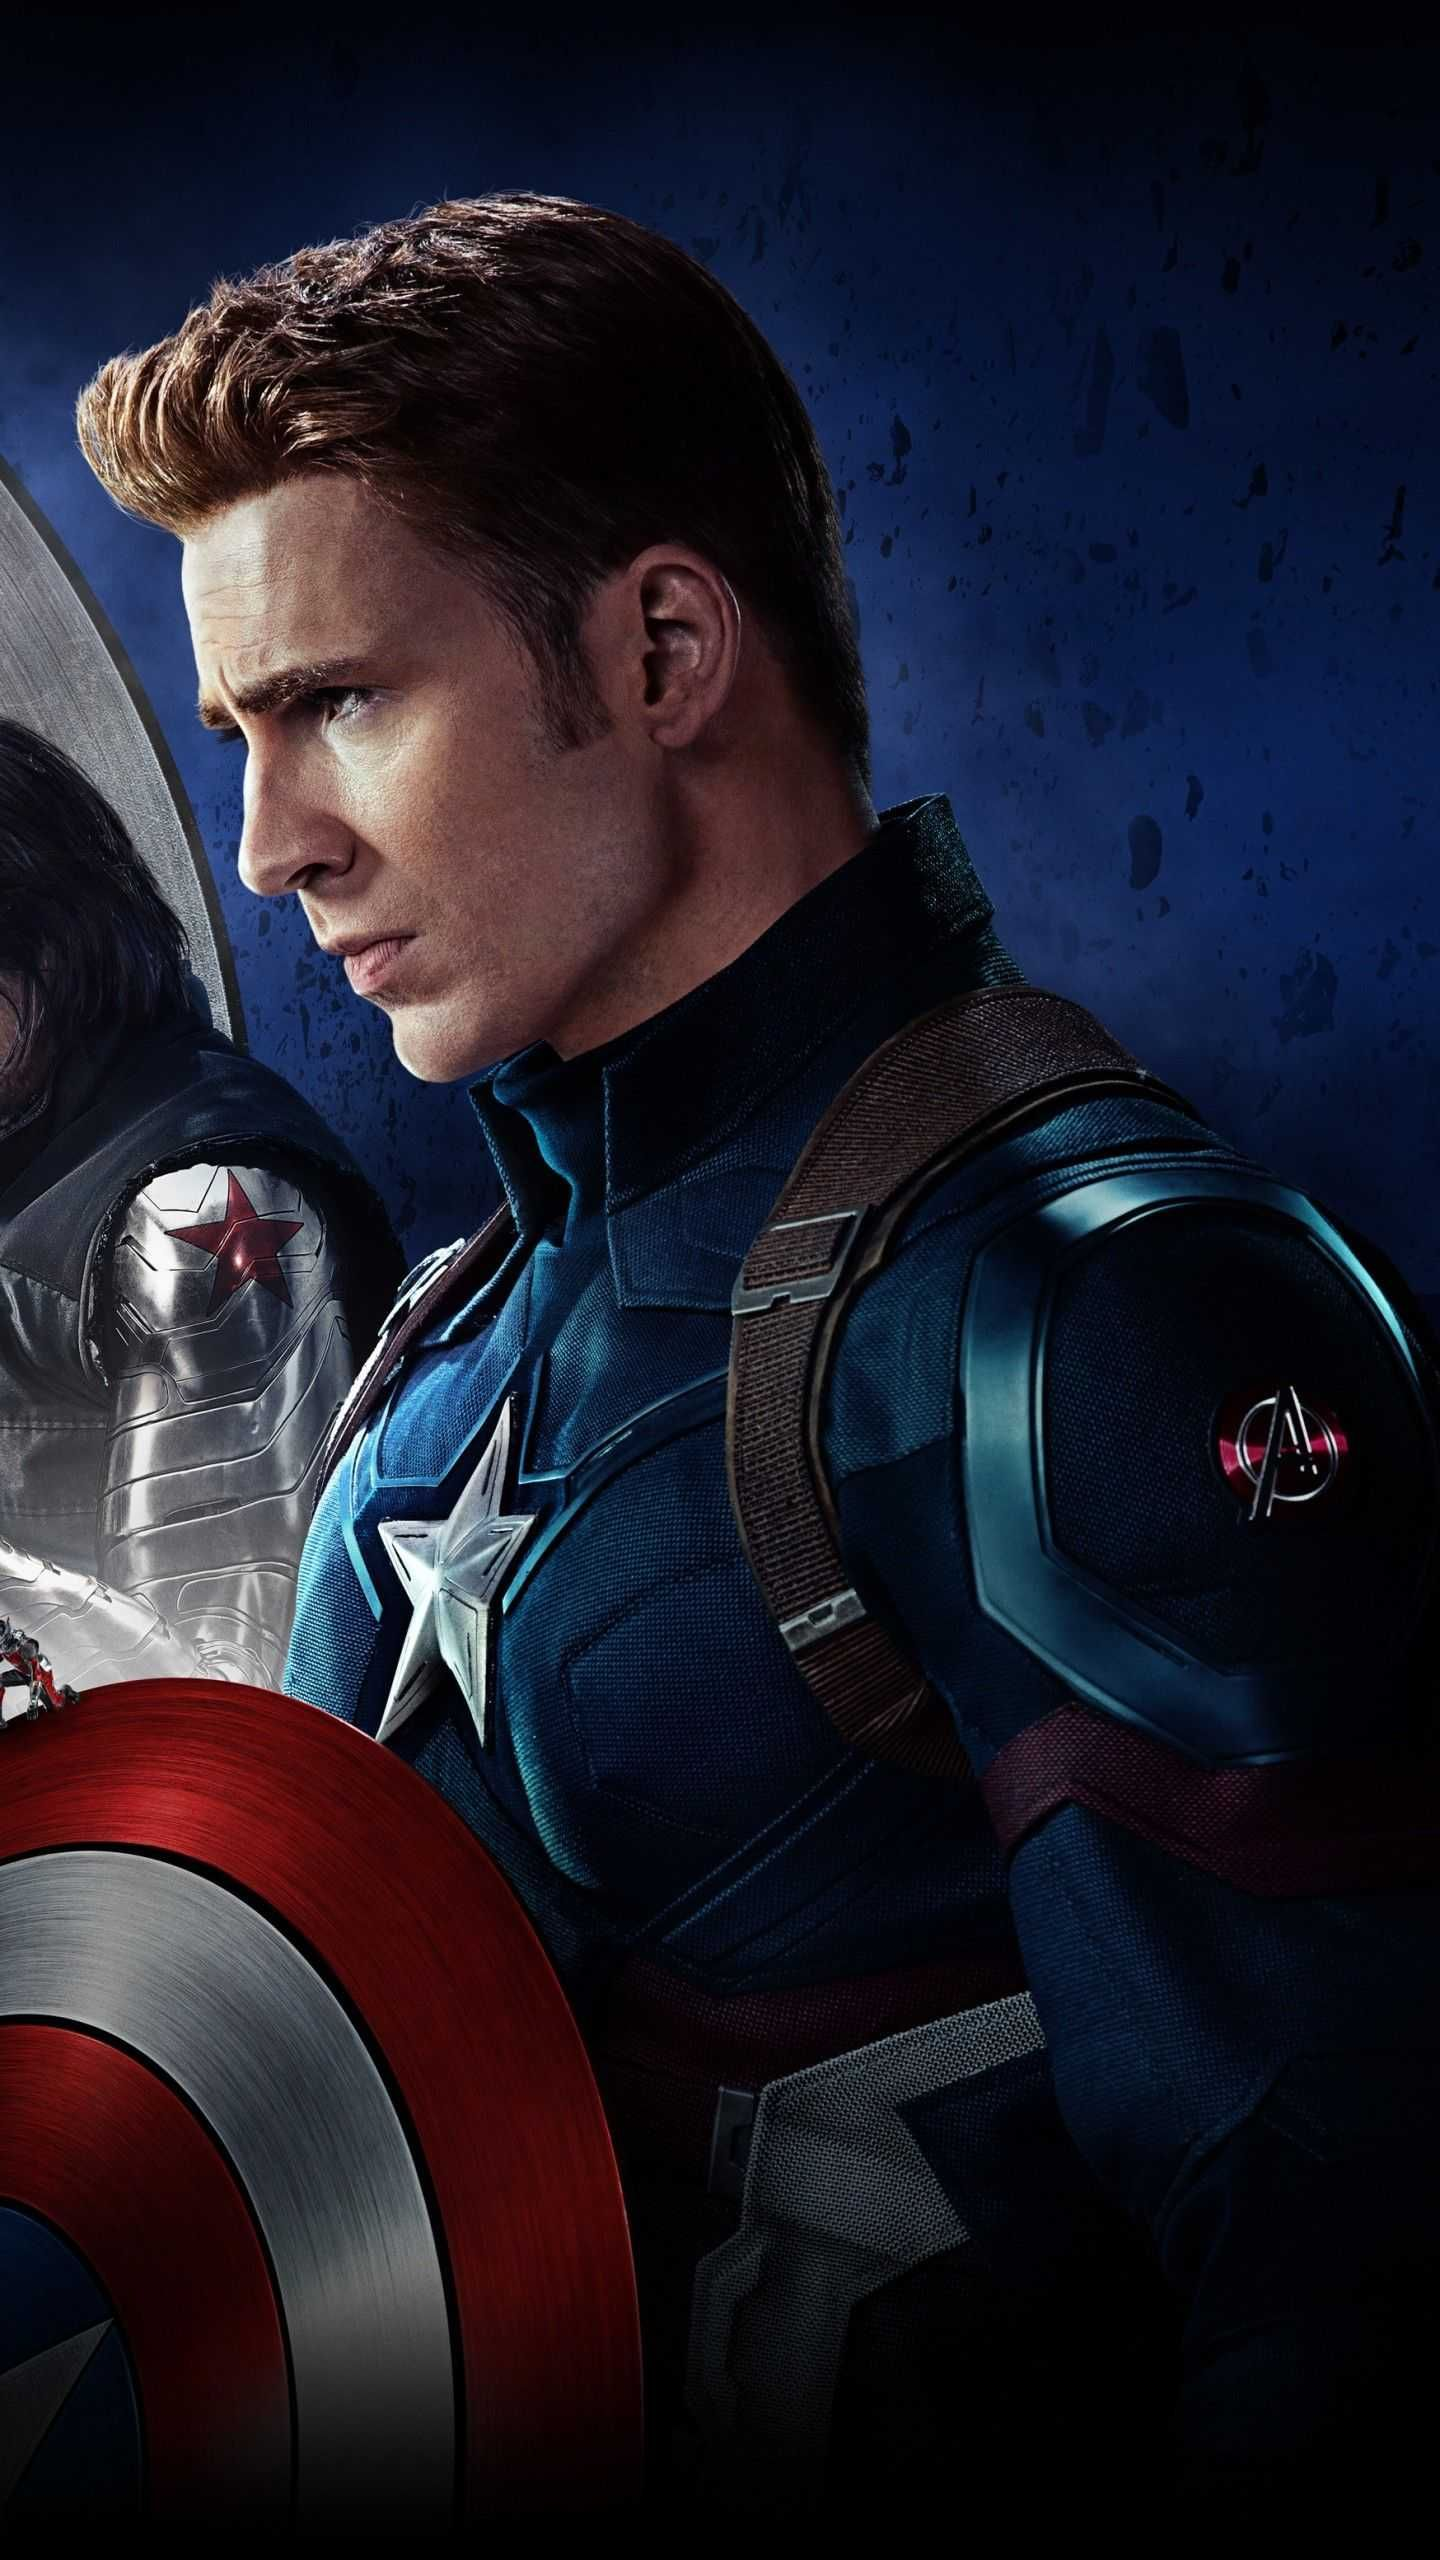 Captain America Wallpaper Discover More Android Avengers Background Desktop Iphone Wallpaper Https Www In 2021 Captain America Wallpaper Captain America Captain 1080p full hd 1080p captain america hd